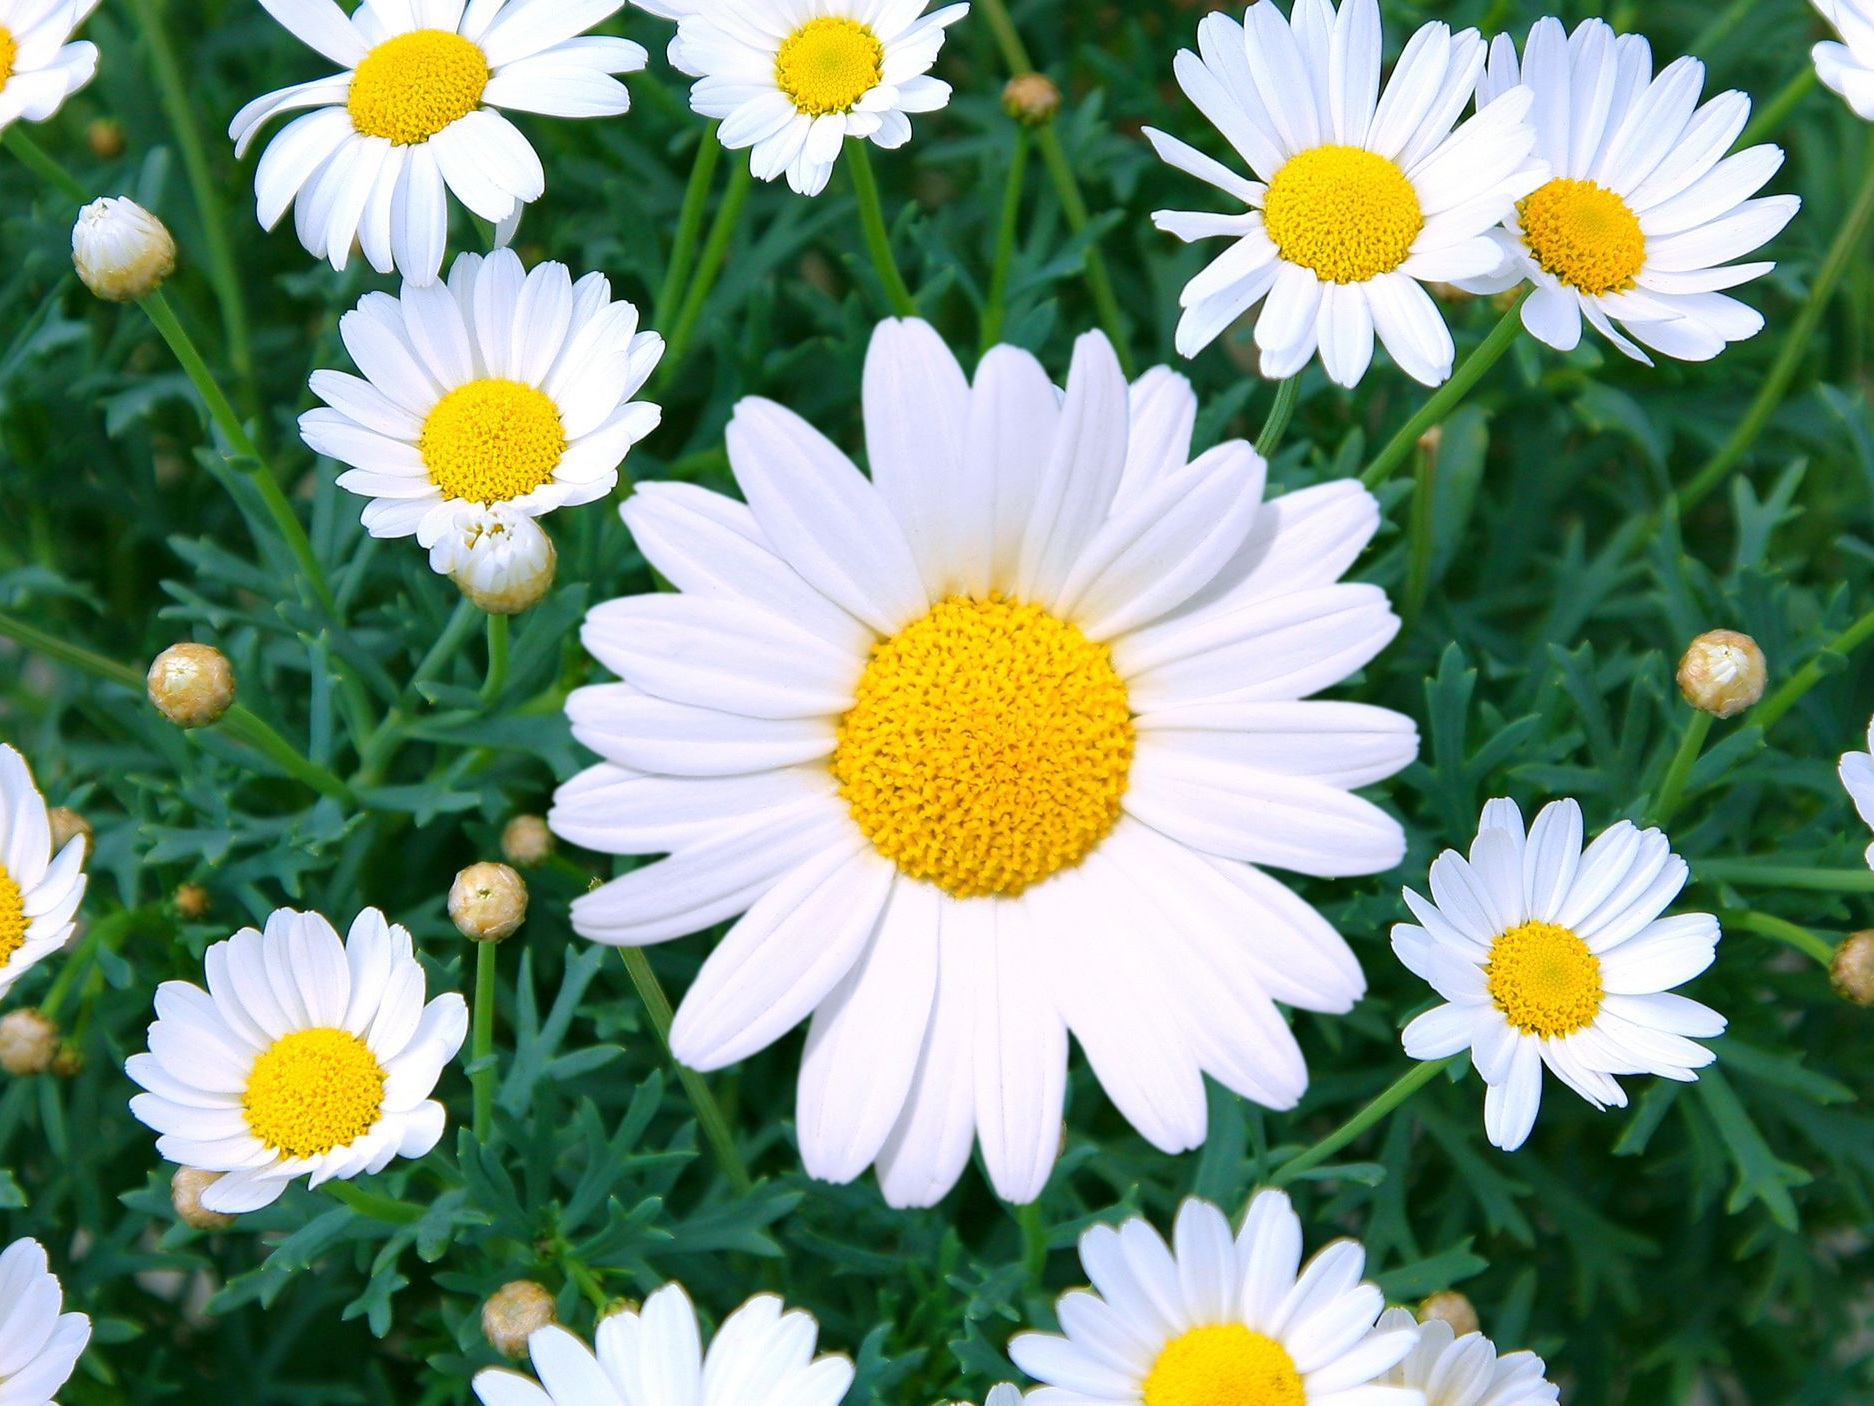 Daisy - Yellow, White and Lavender